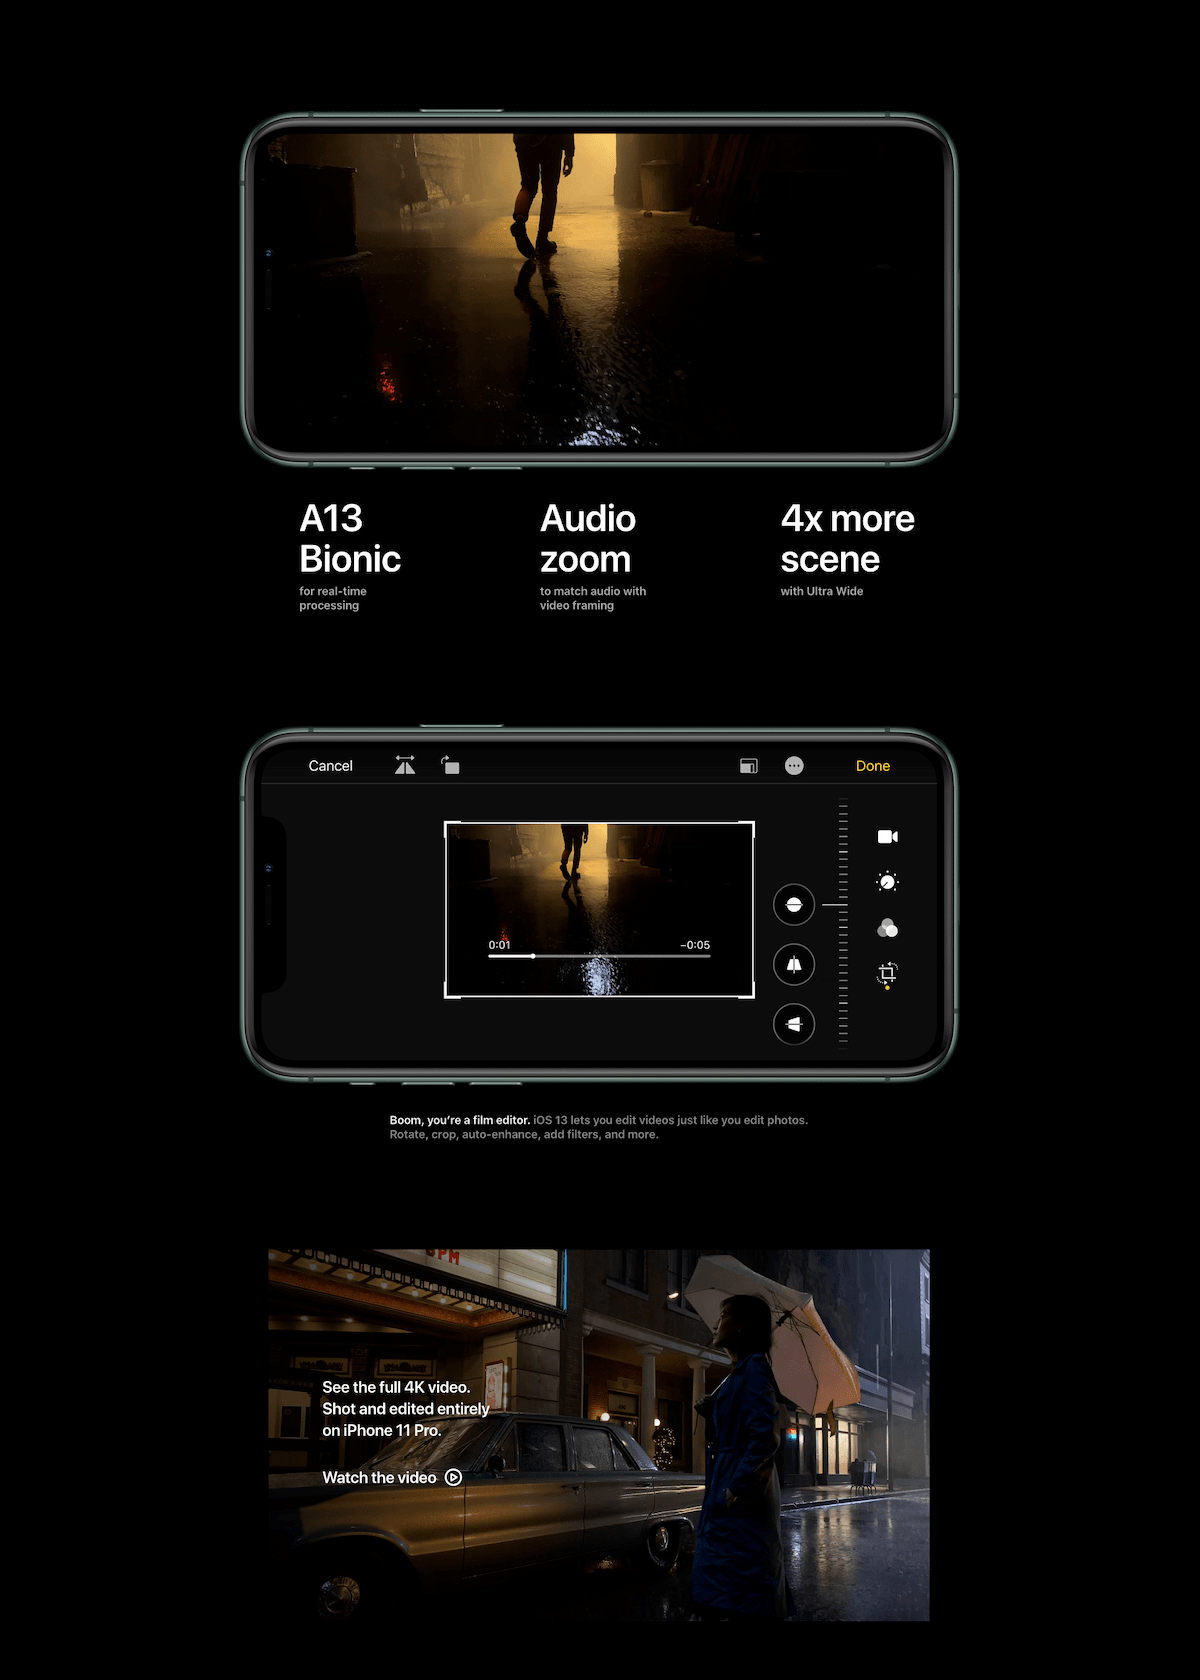 The iPhone Pro pages are found in dark mode.